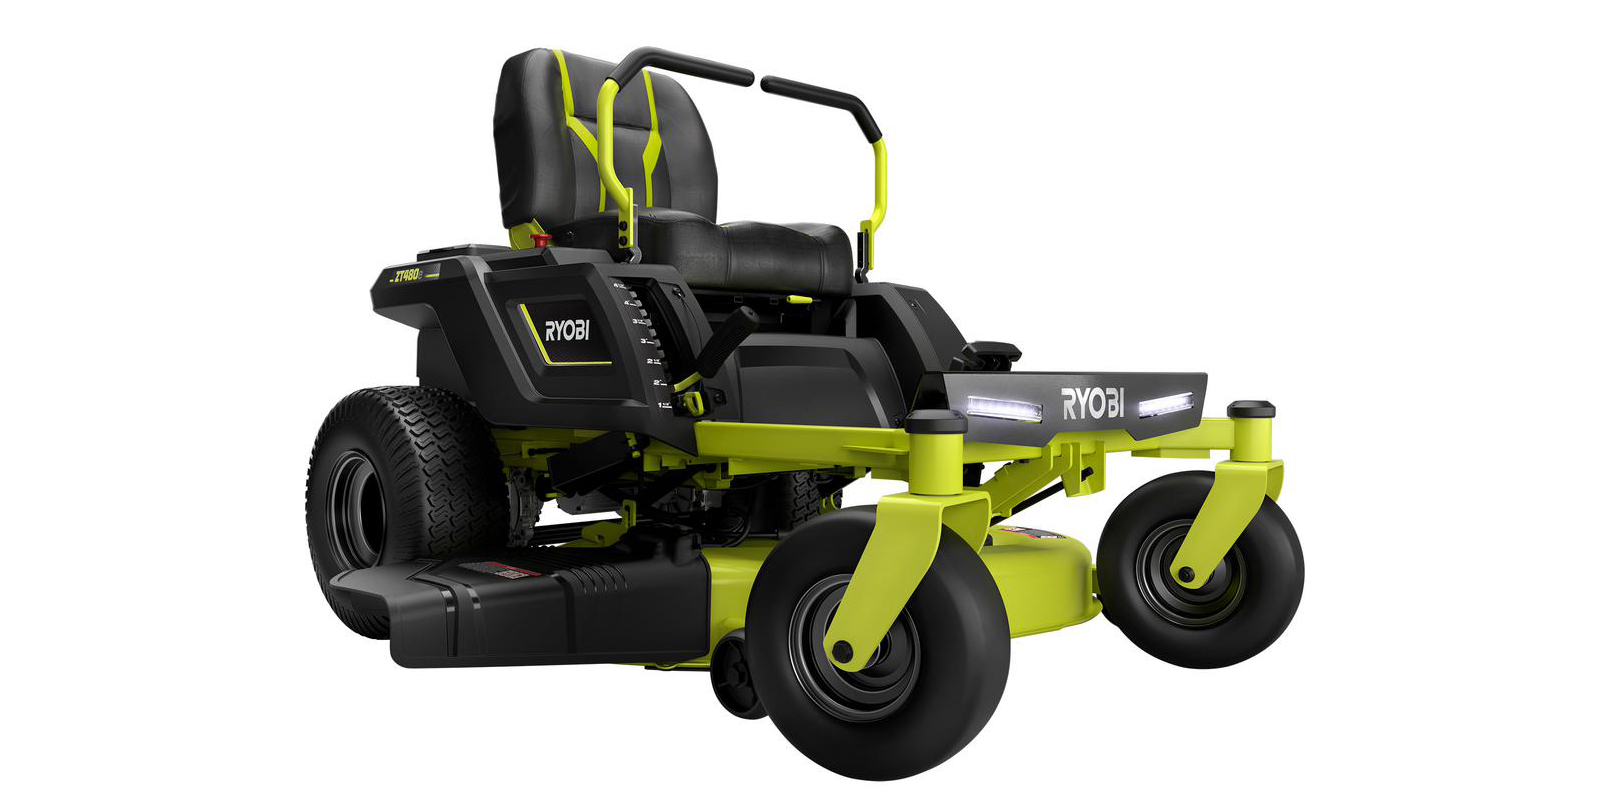 Save $500 off Ryobi's electric zero-turn riding lawn mower, more in today's Green Deals